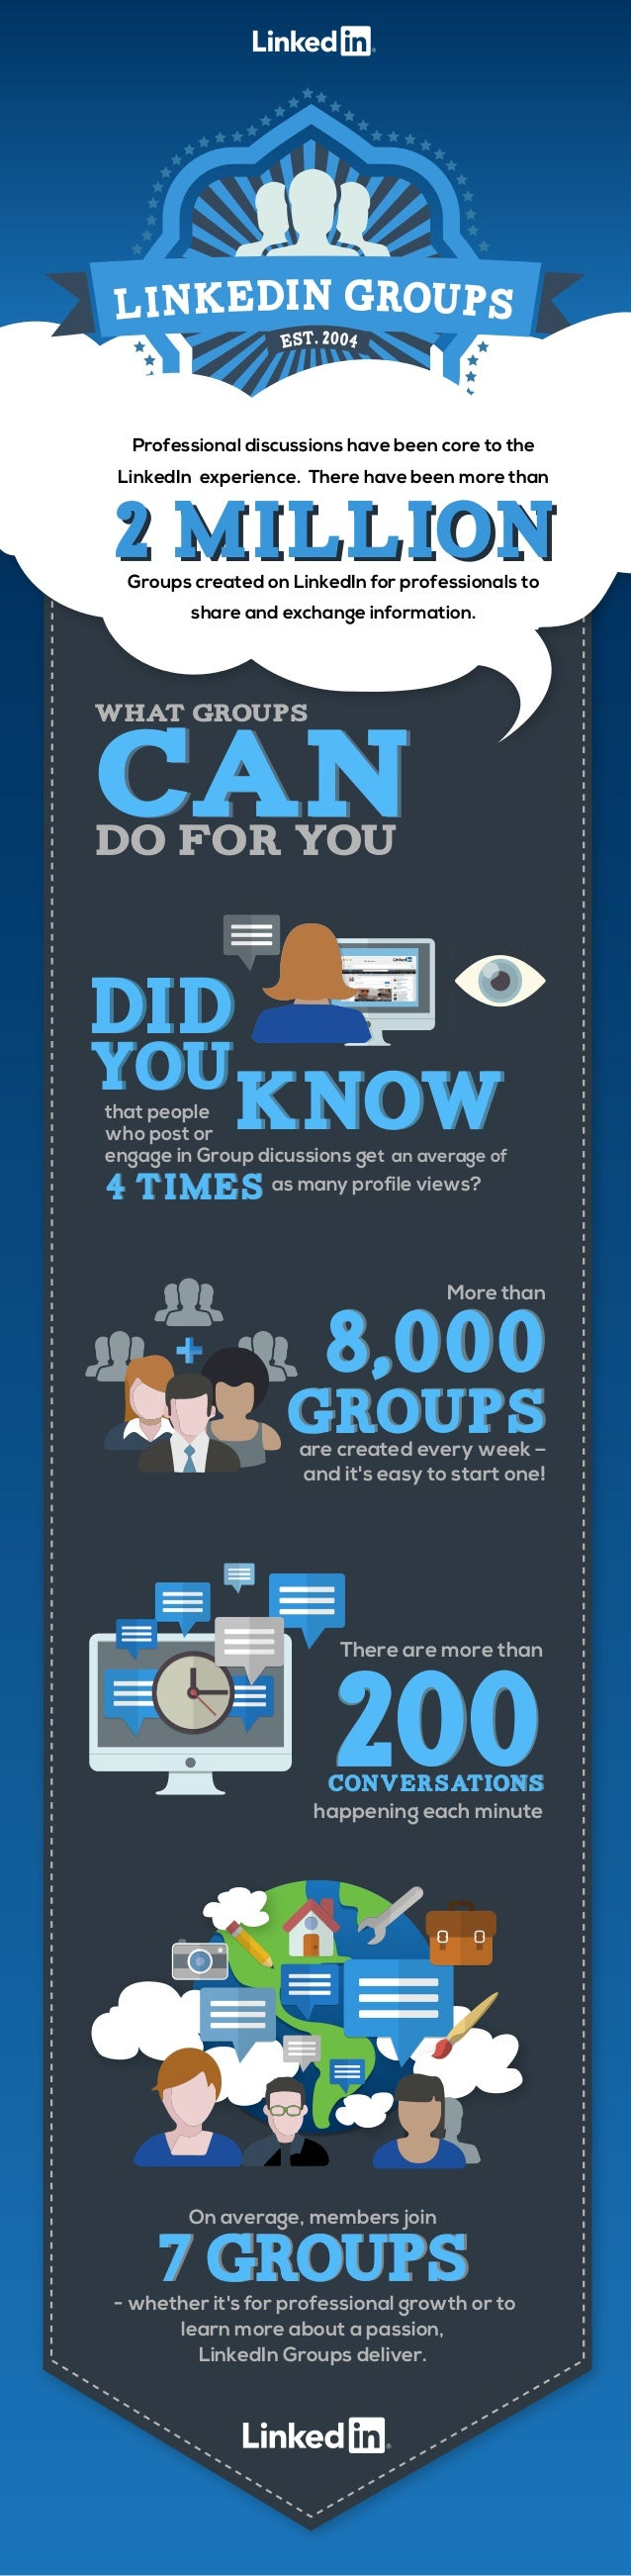 2 Million LinkedIn Groups